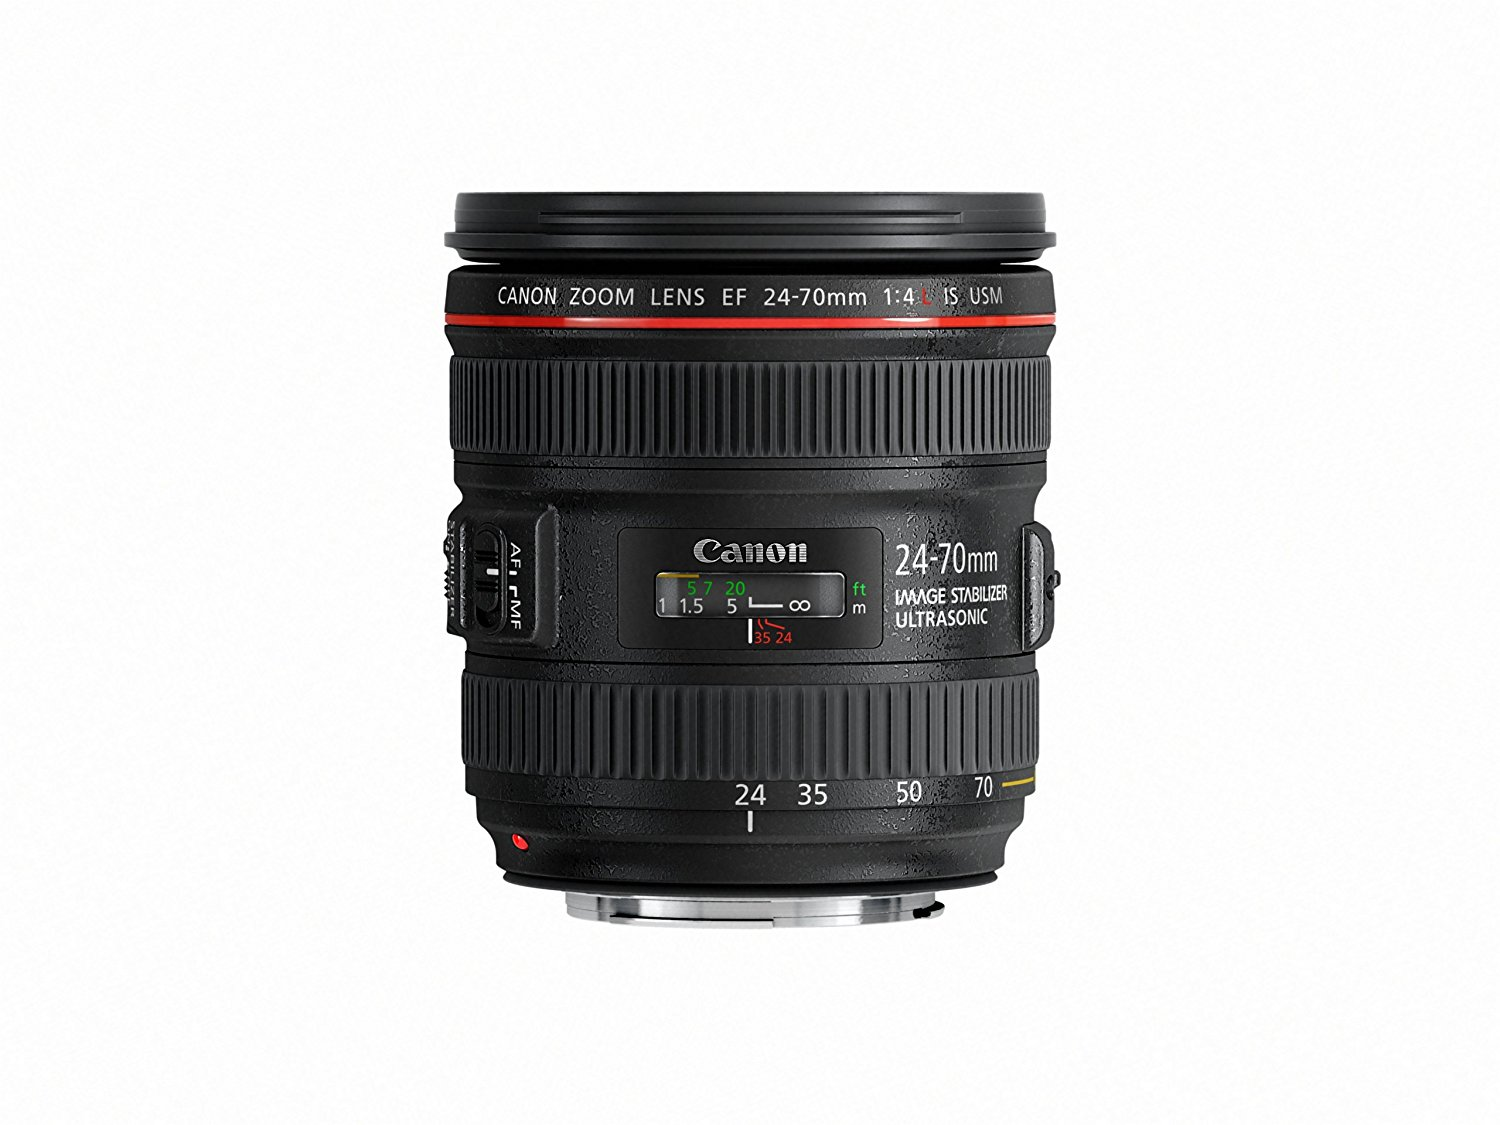 Wide Angle –   Canon EF 24-70mm f/4.0L Zoom   This seems to be the standard  go to  lens for most Canon photographers and I use mostly for weddings and landscapes.